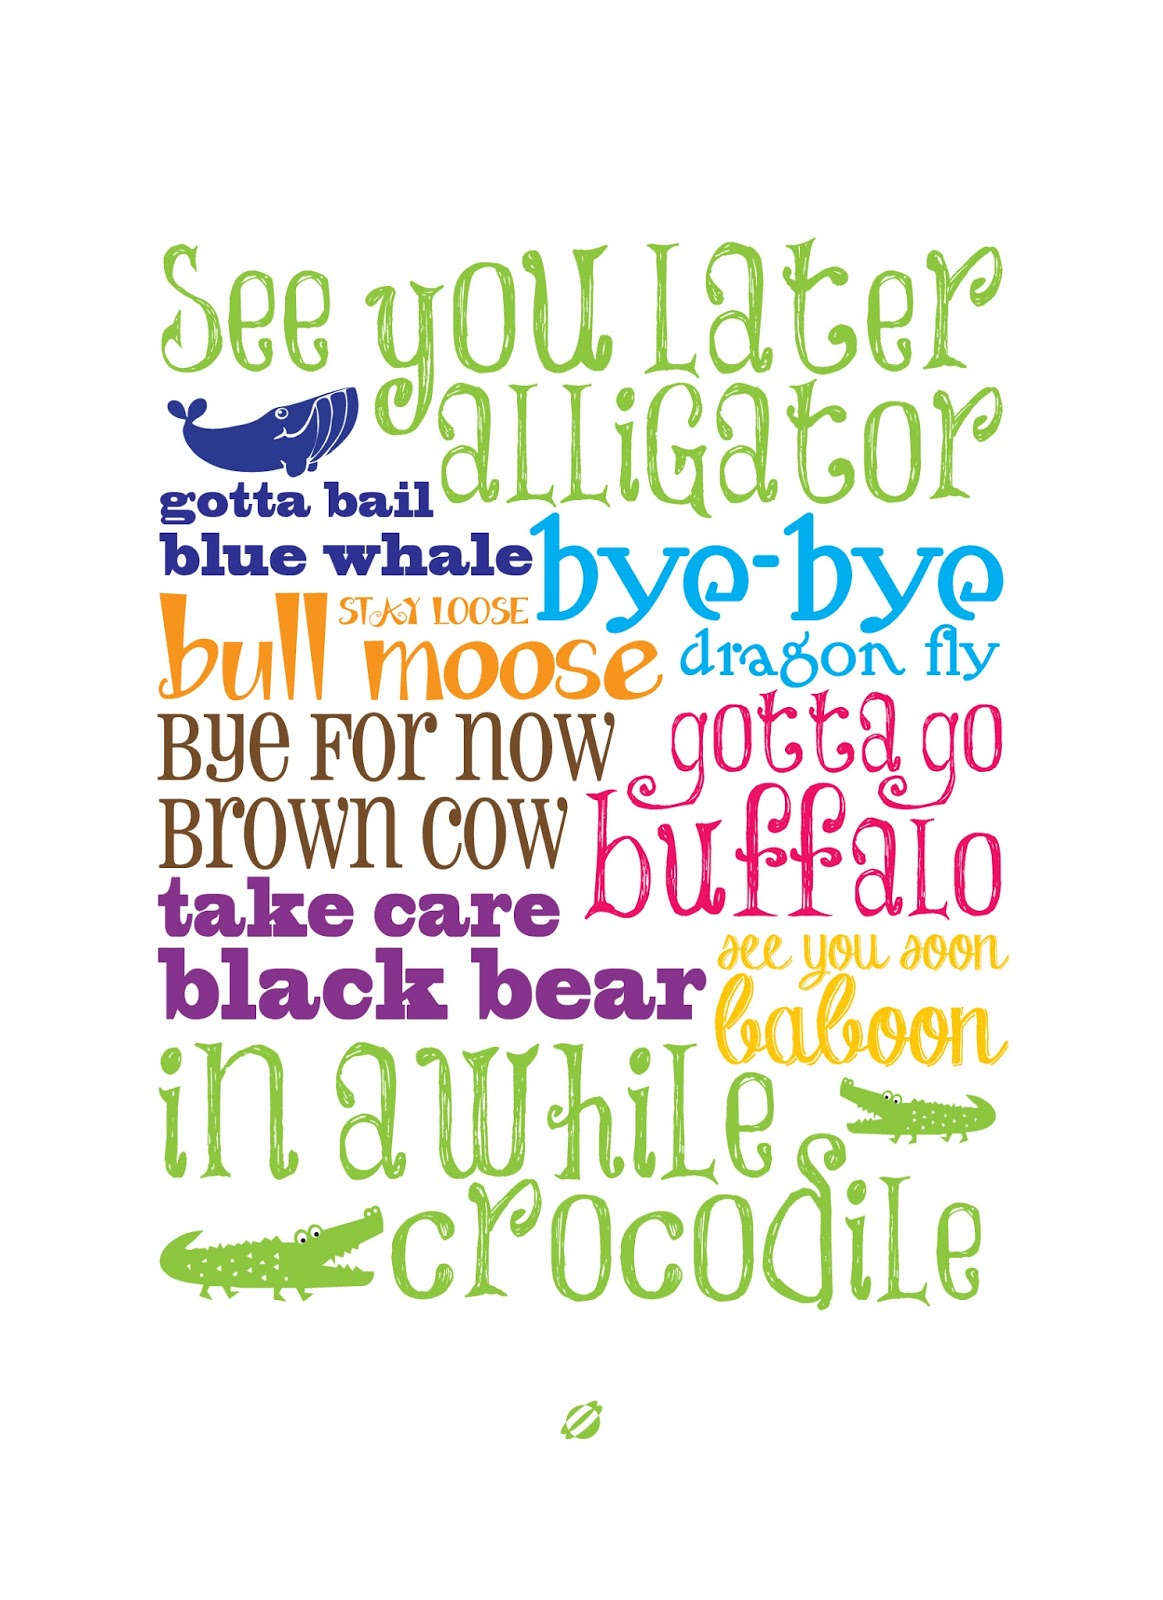 graphic relating to See You Later Alligator Poem Printable named LostBumblebee: Perspective By yourself Afterwards Alligator